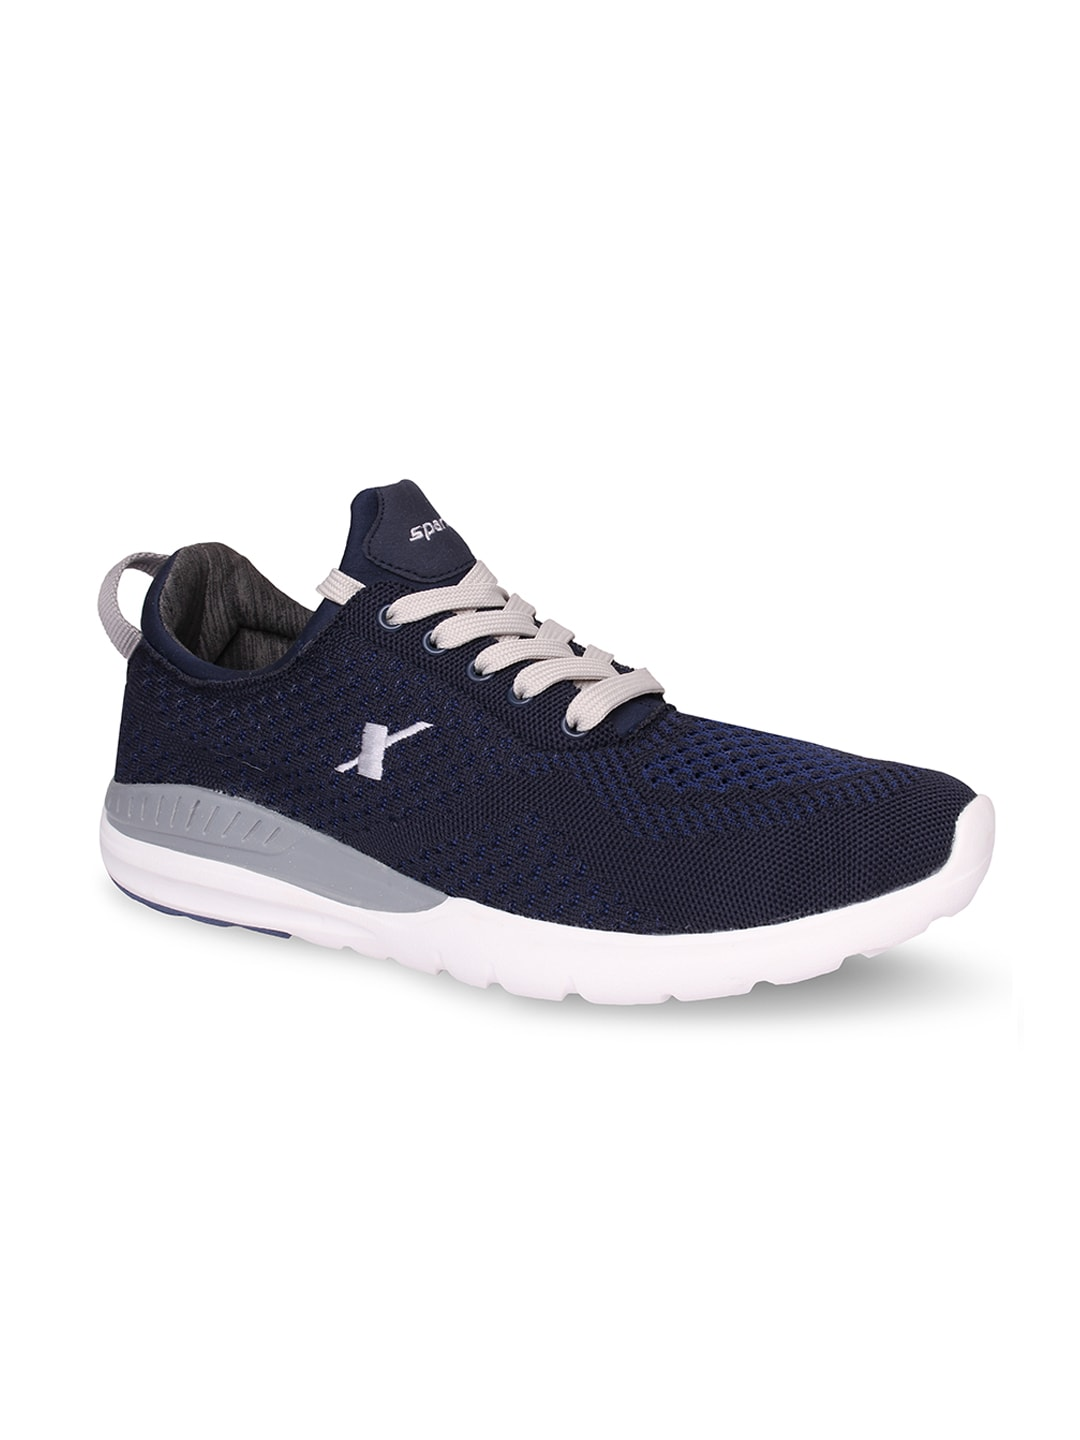 0ef291d2406 Sparx Shoes - Buy Sparx Shoes for Men Online in India